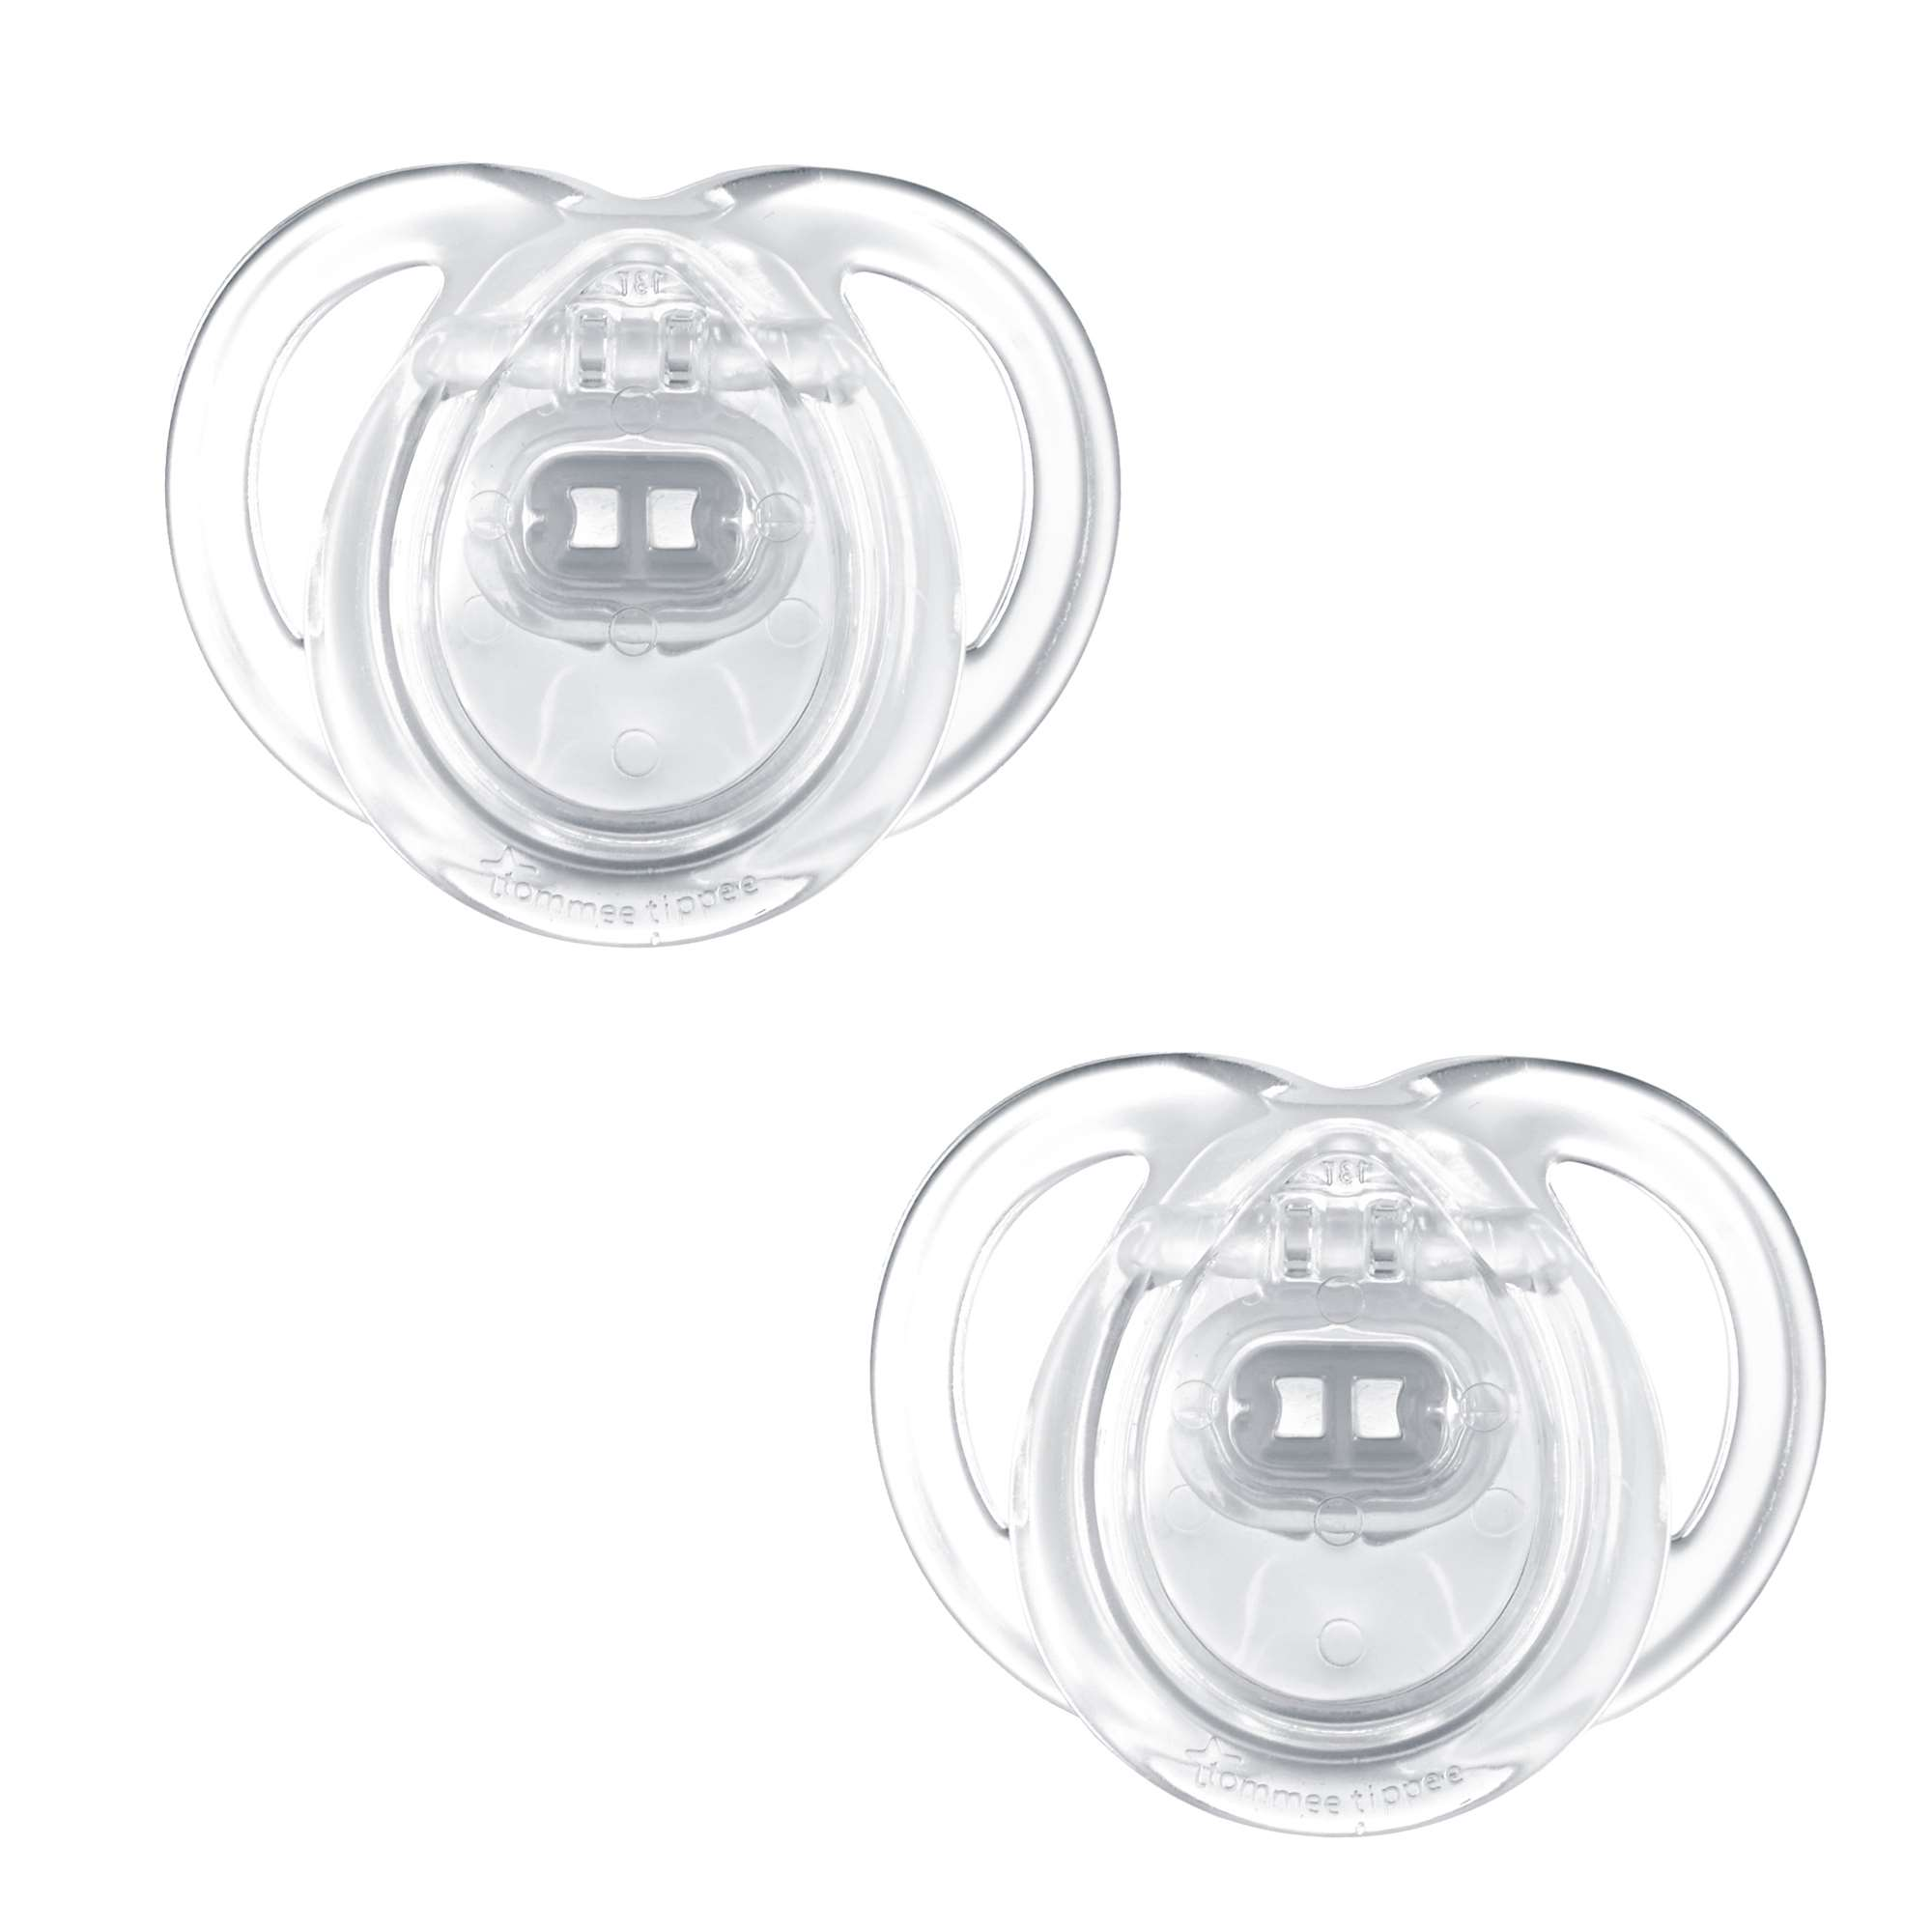 7072 - tt ctn 2x 0-6m anytime soother_clear